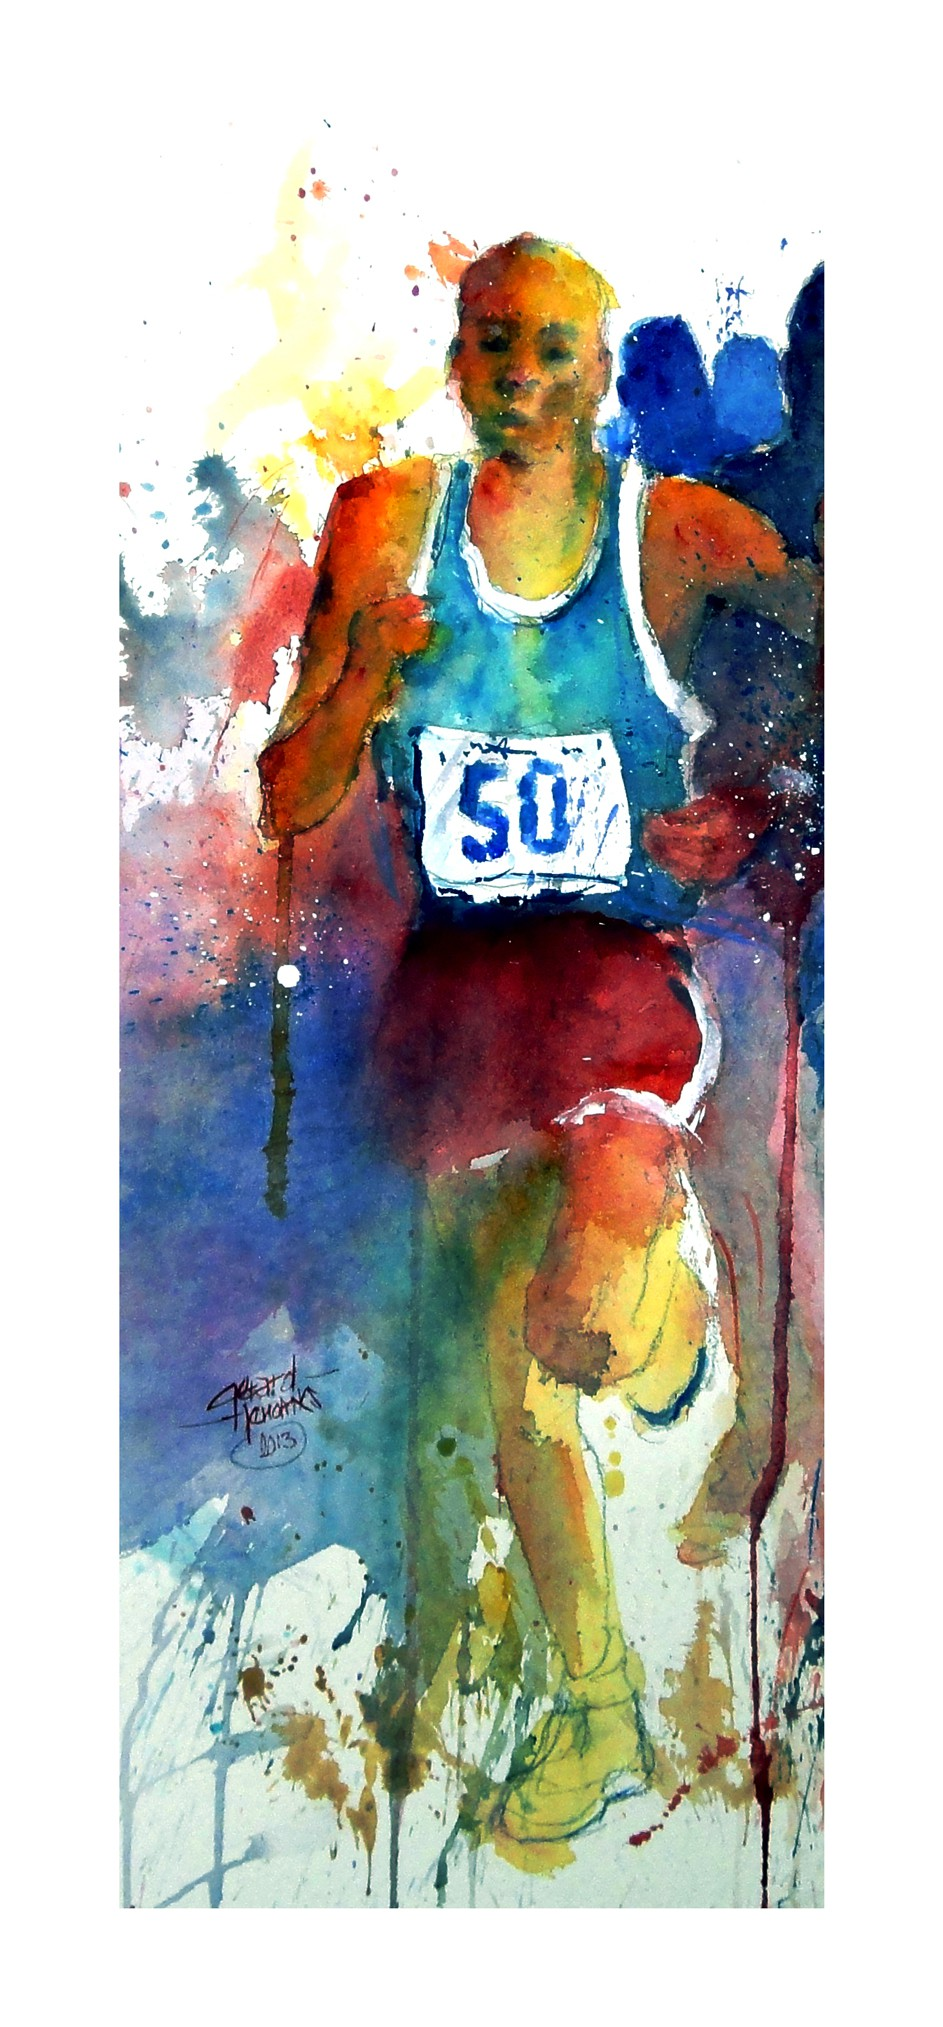 Runner - Der Läufer. Original Aquarell, 2013.